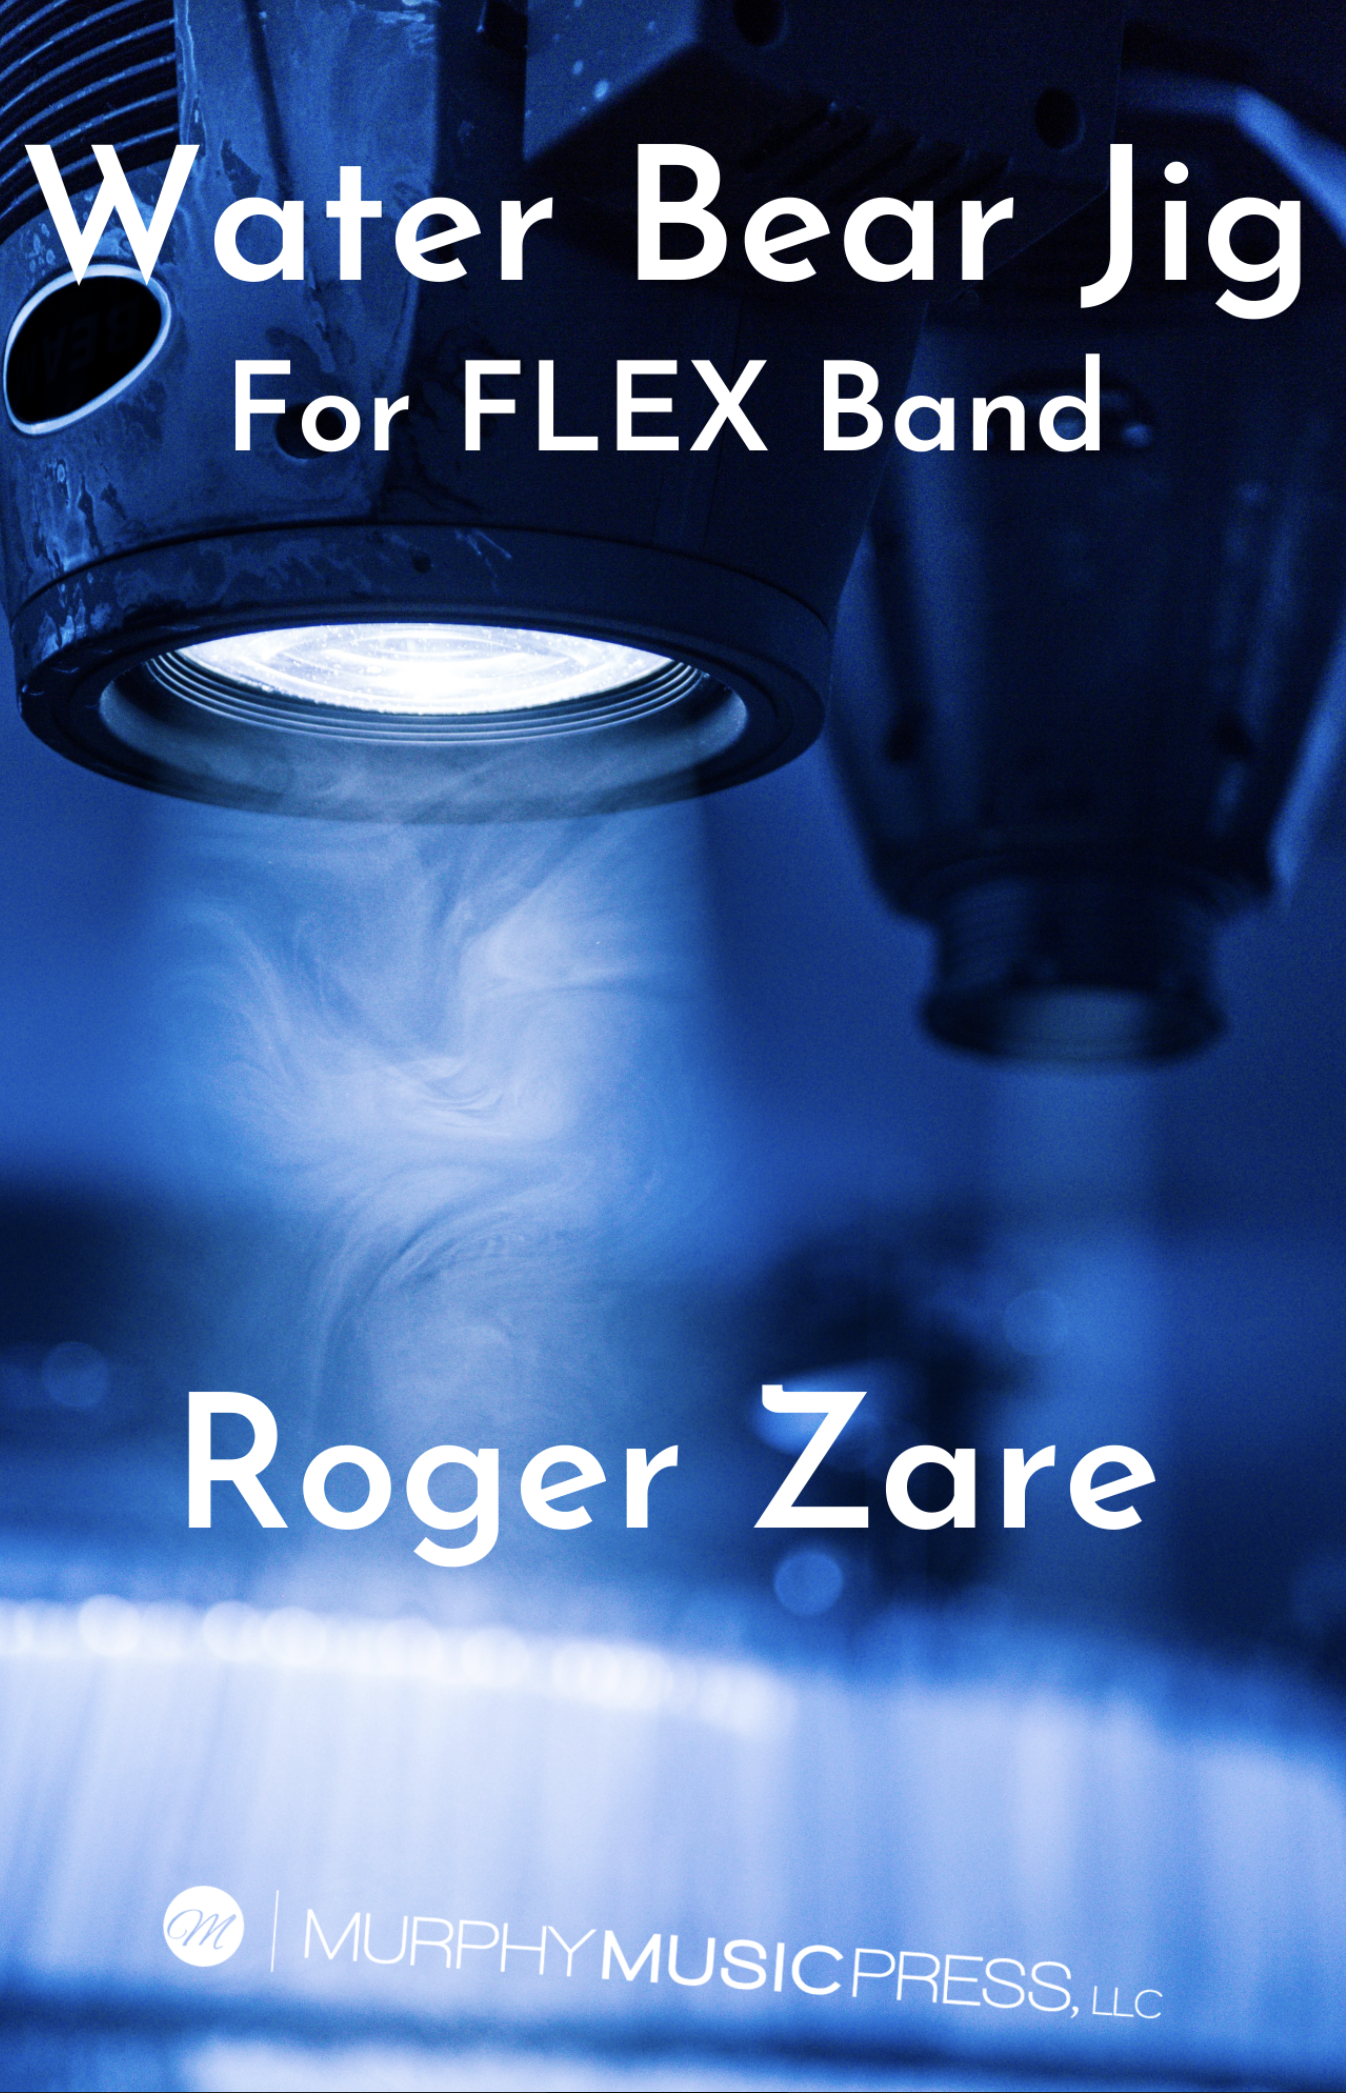 Water Bear Jig (Flex Version) by Roger Zare